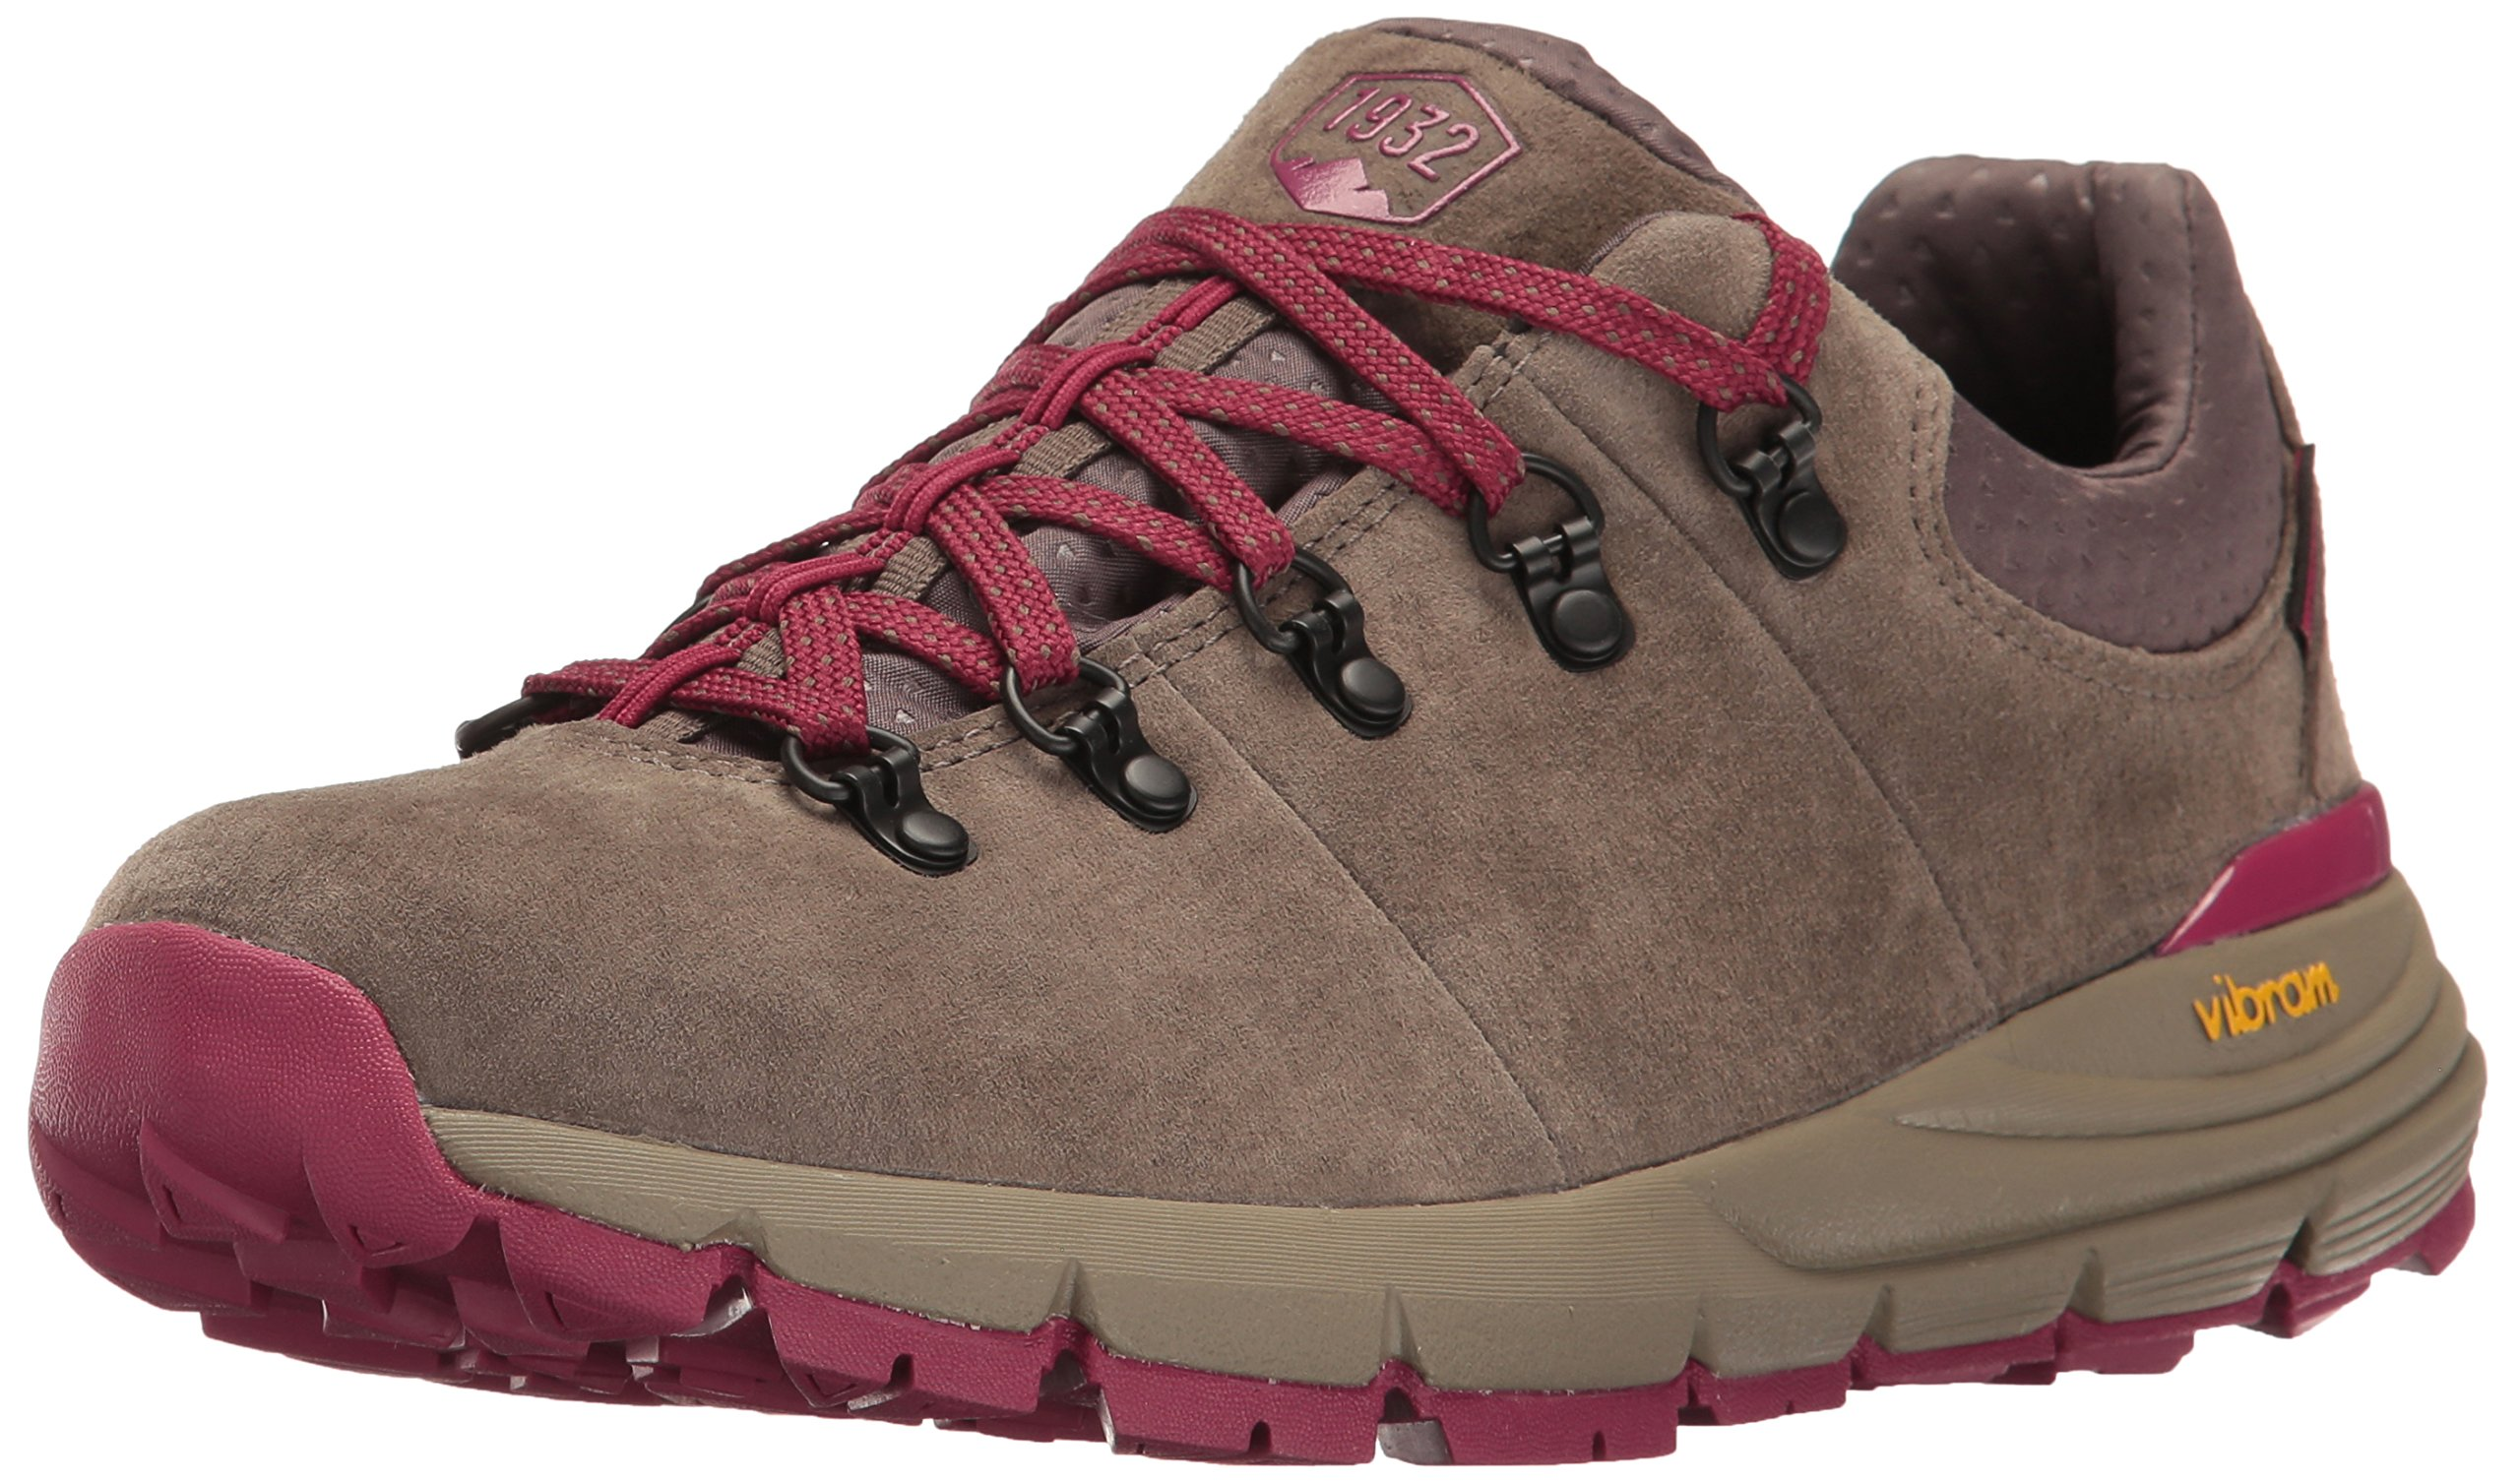 Danner Women's Mountain 600 Low 3'' Hiking Boot, Gray/Plum, 9 M US